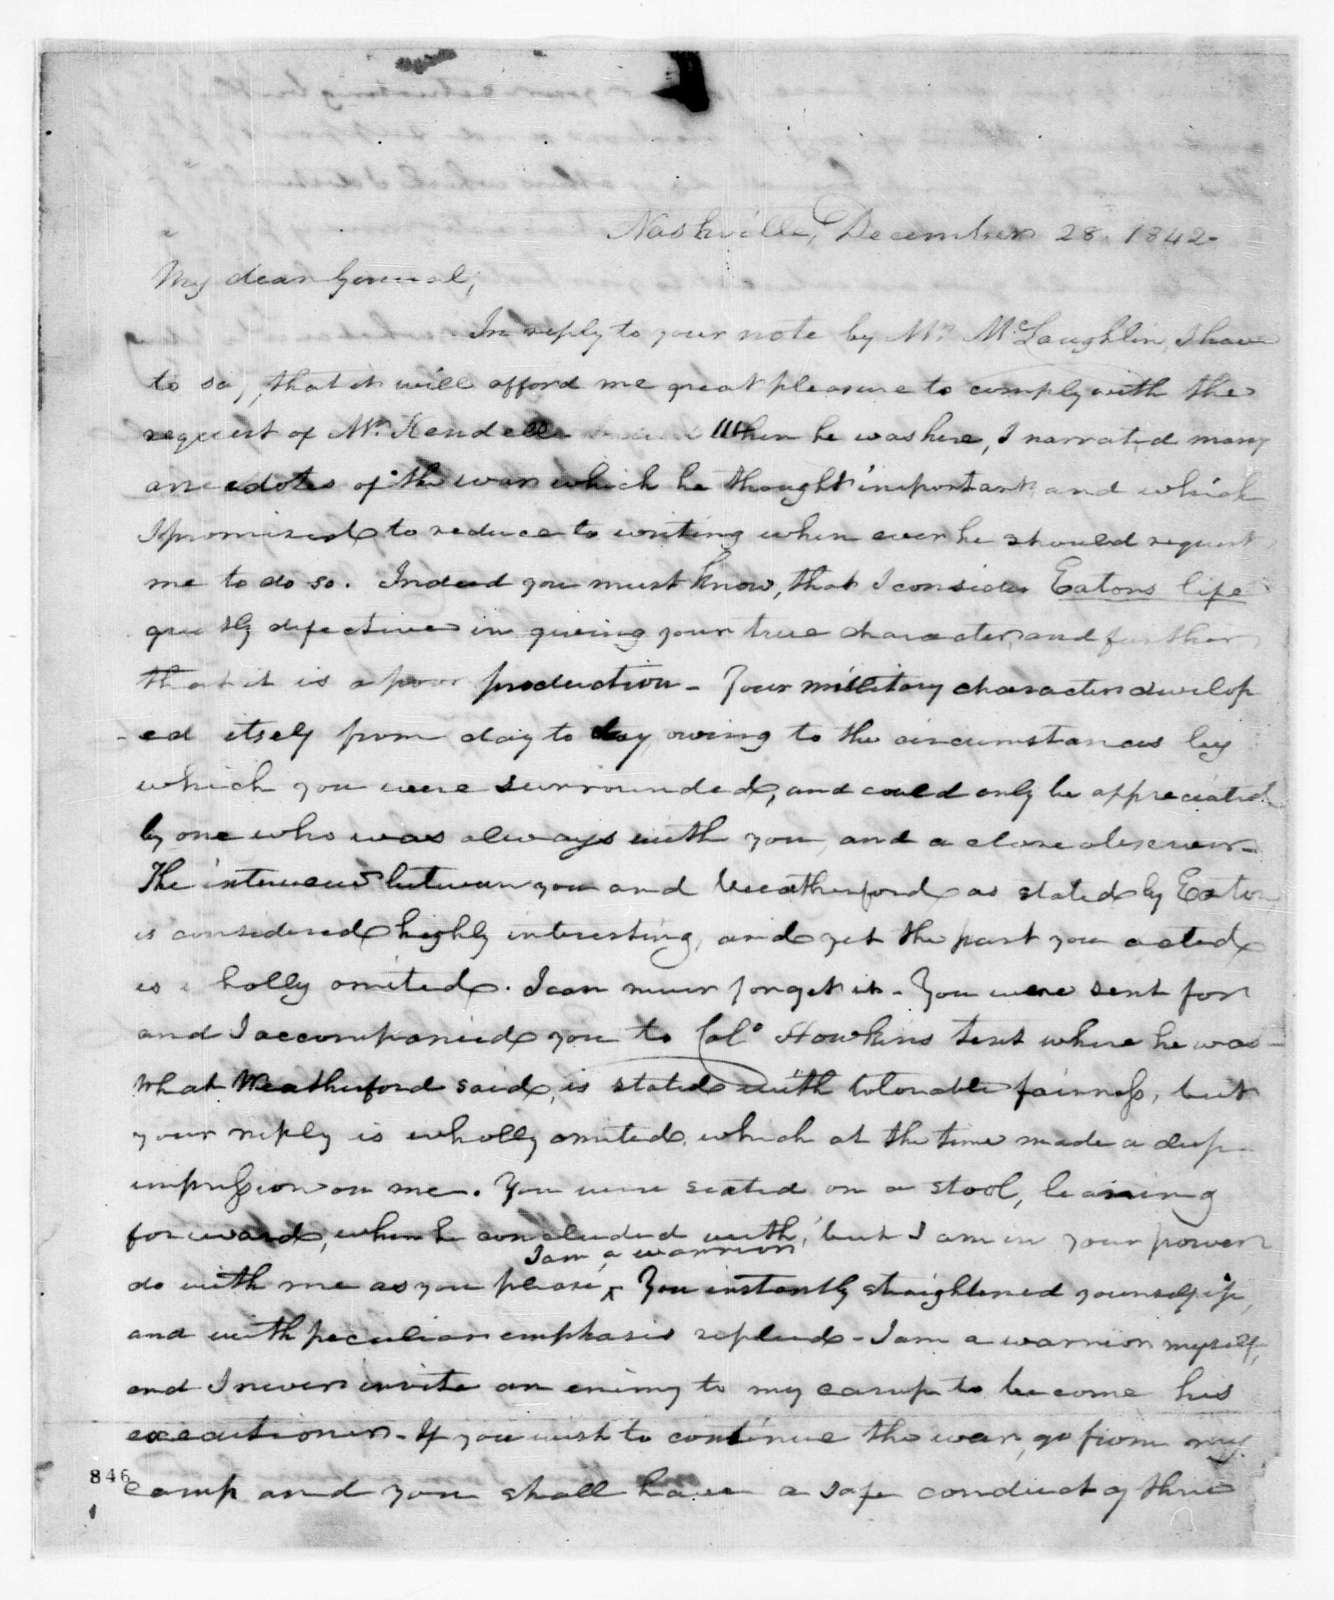 Unknown to Andrew Jackson, December 28, 1842